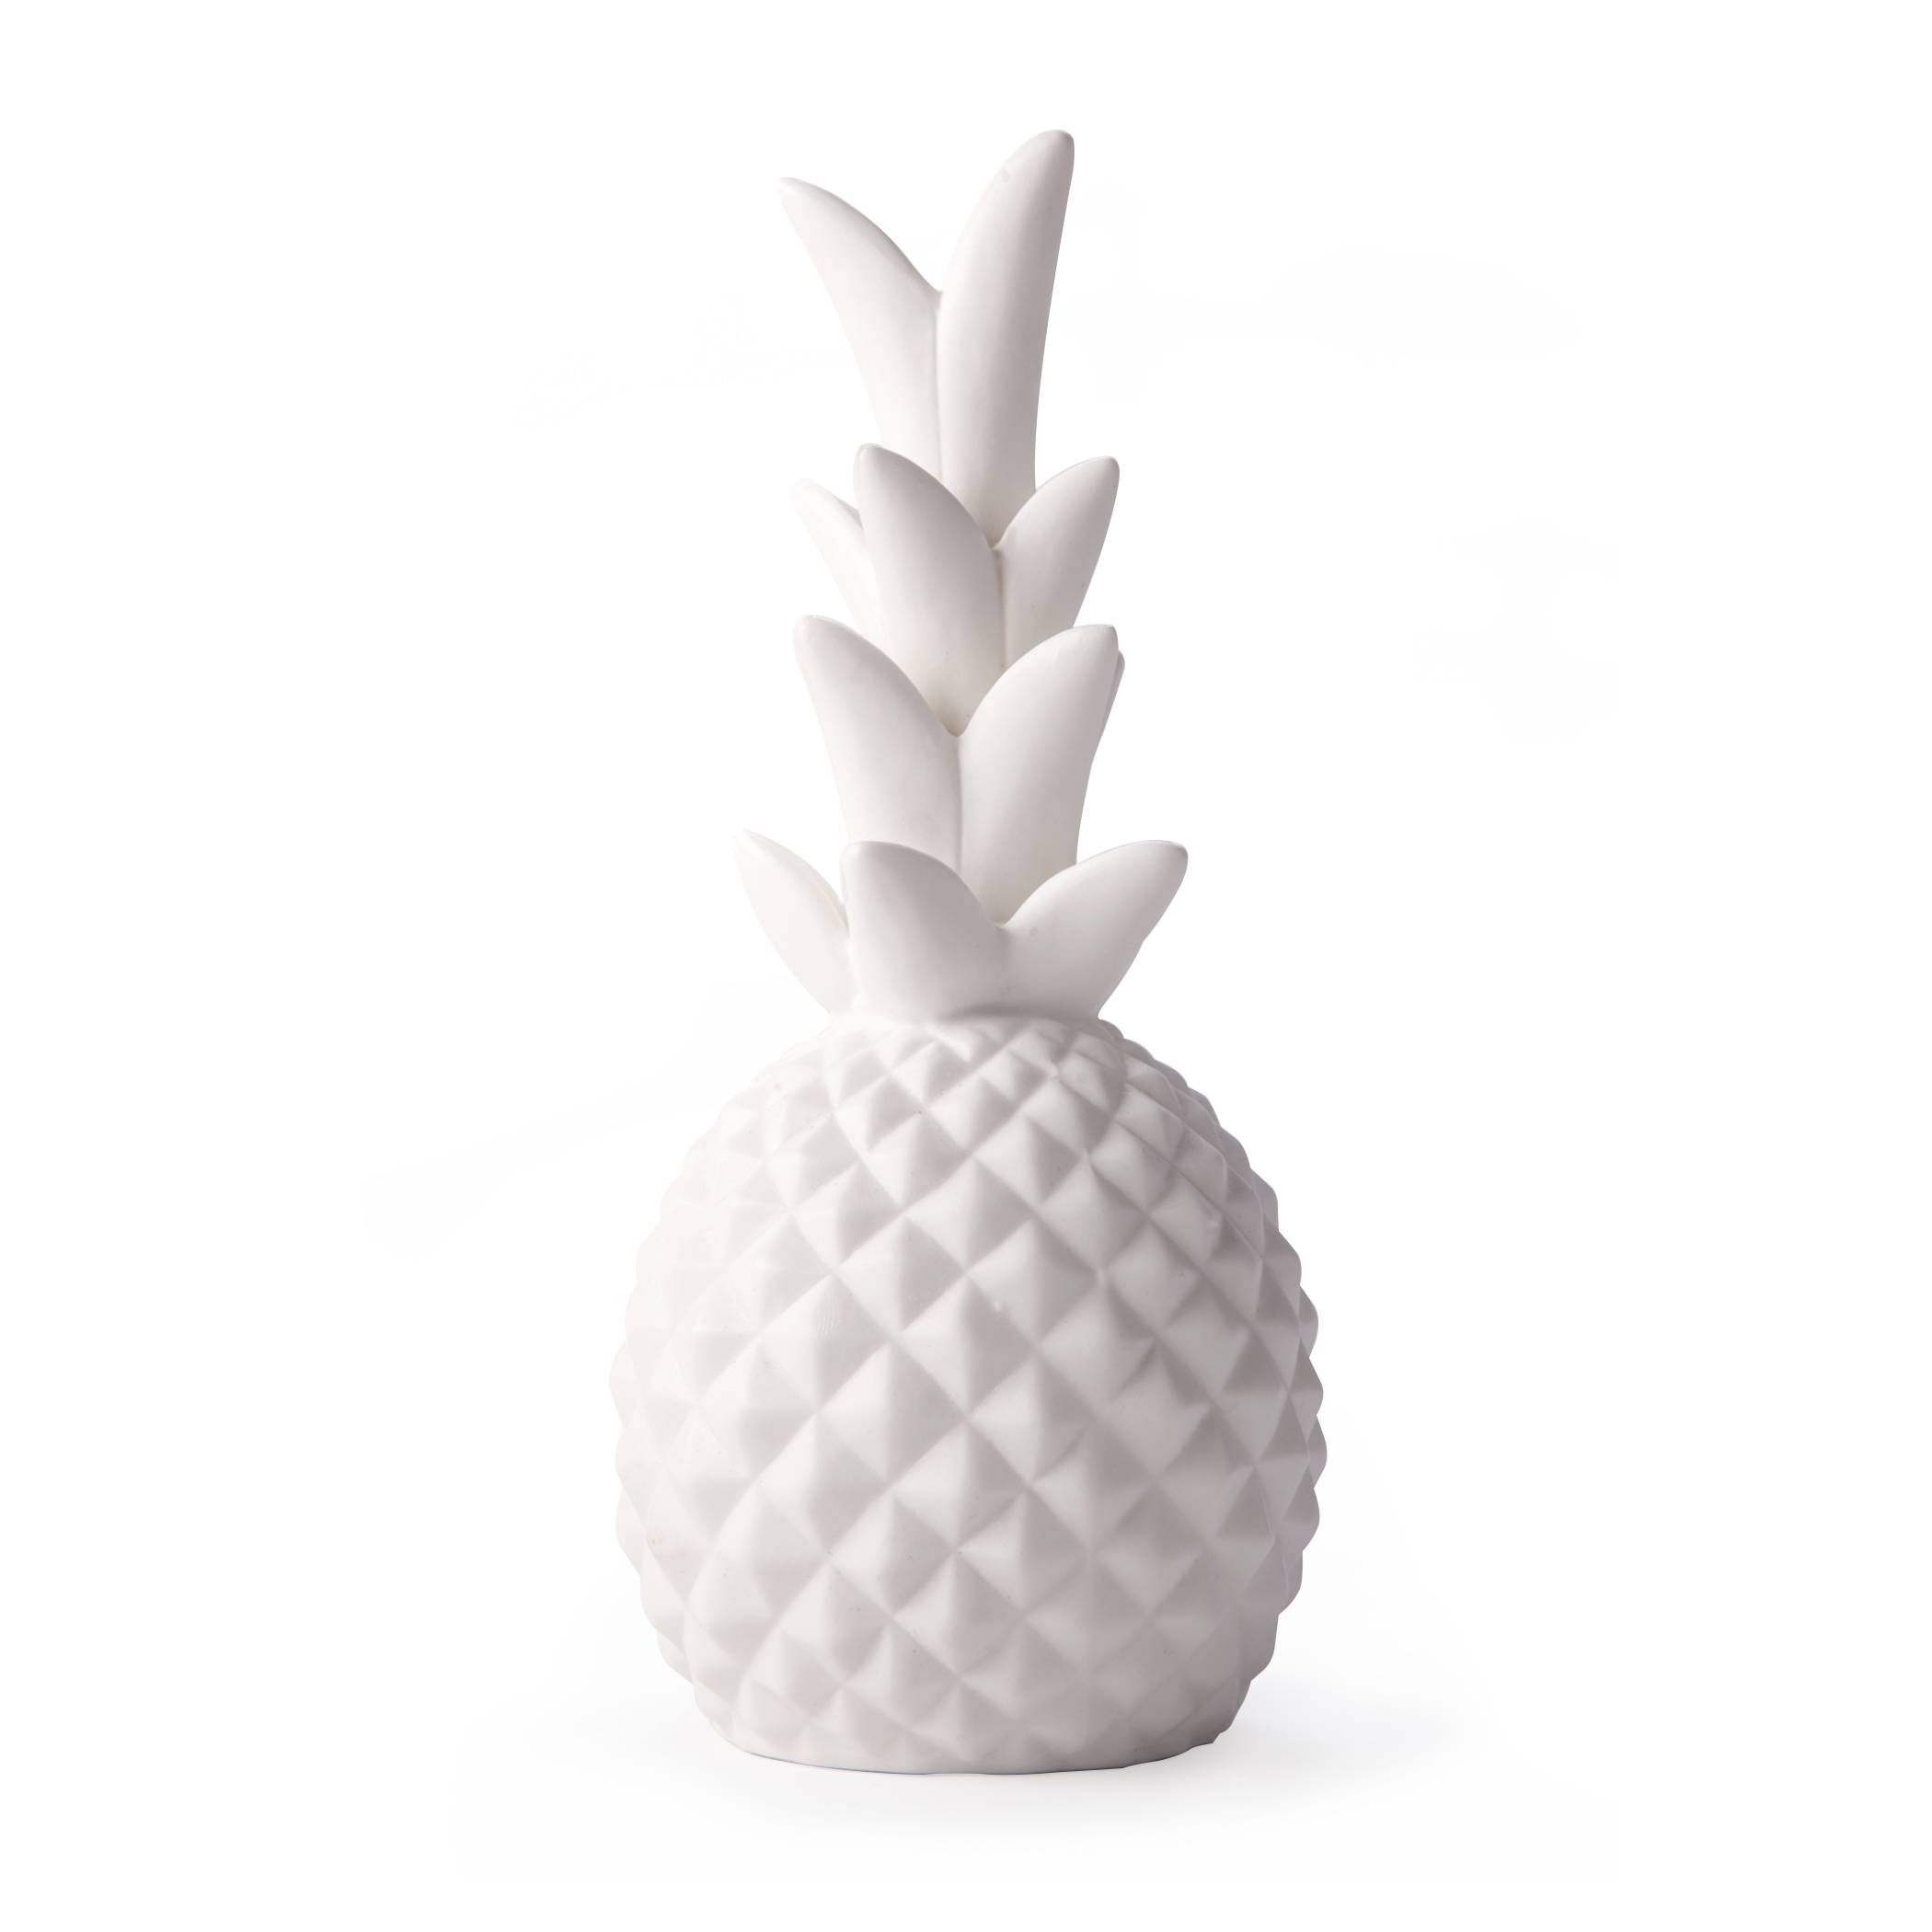 LED Lampe - Pineapple LED Light